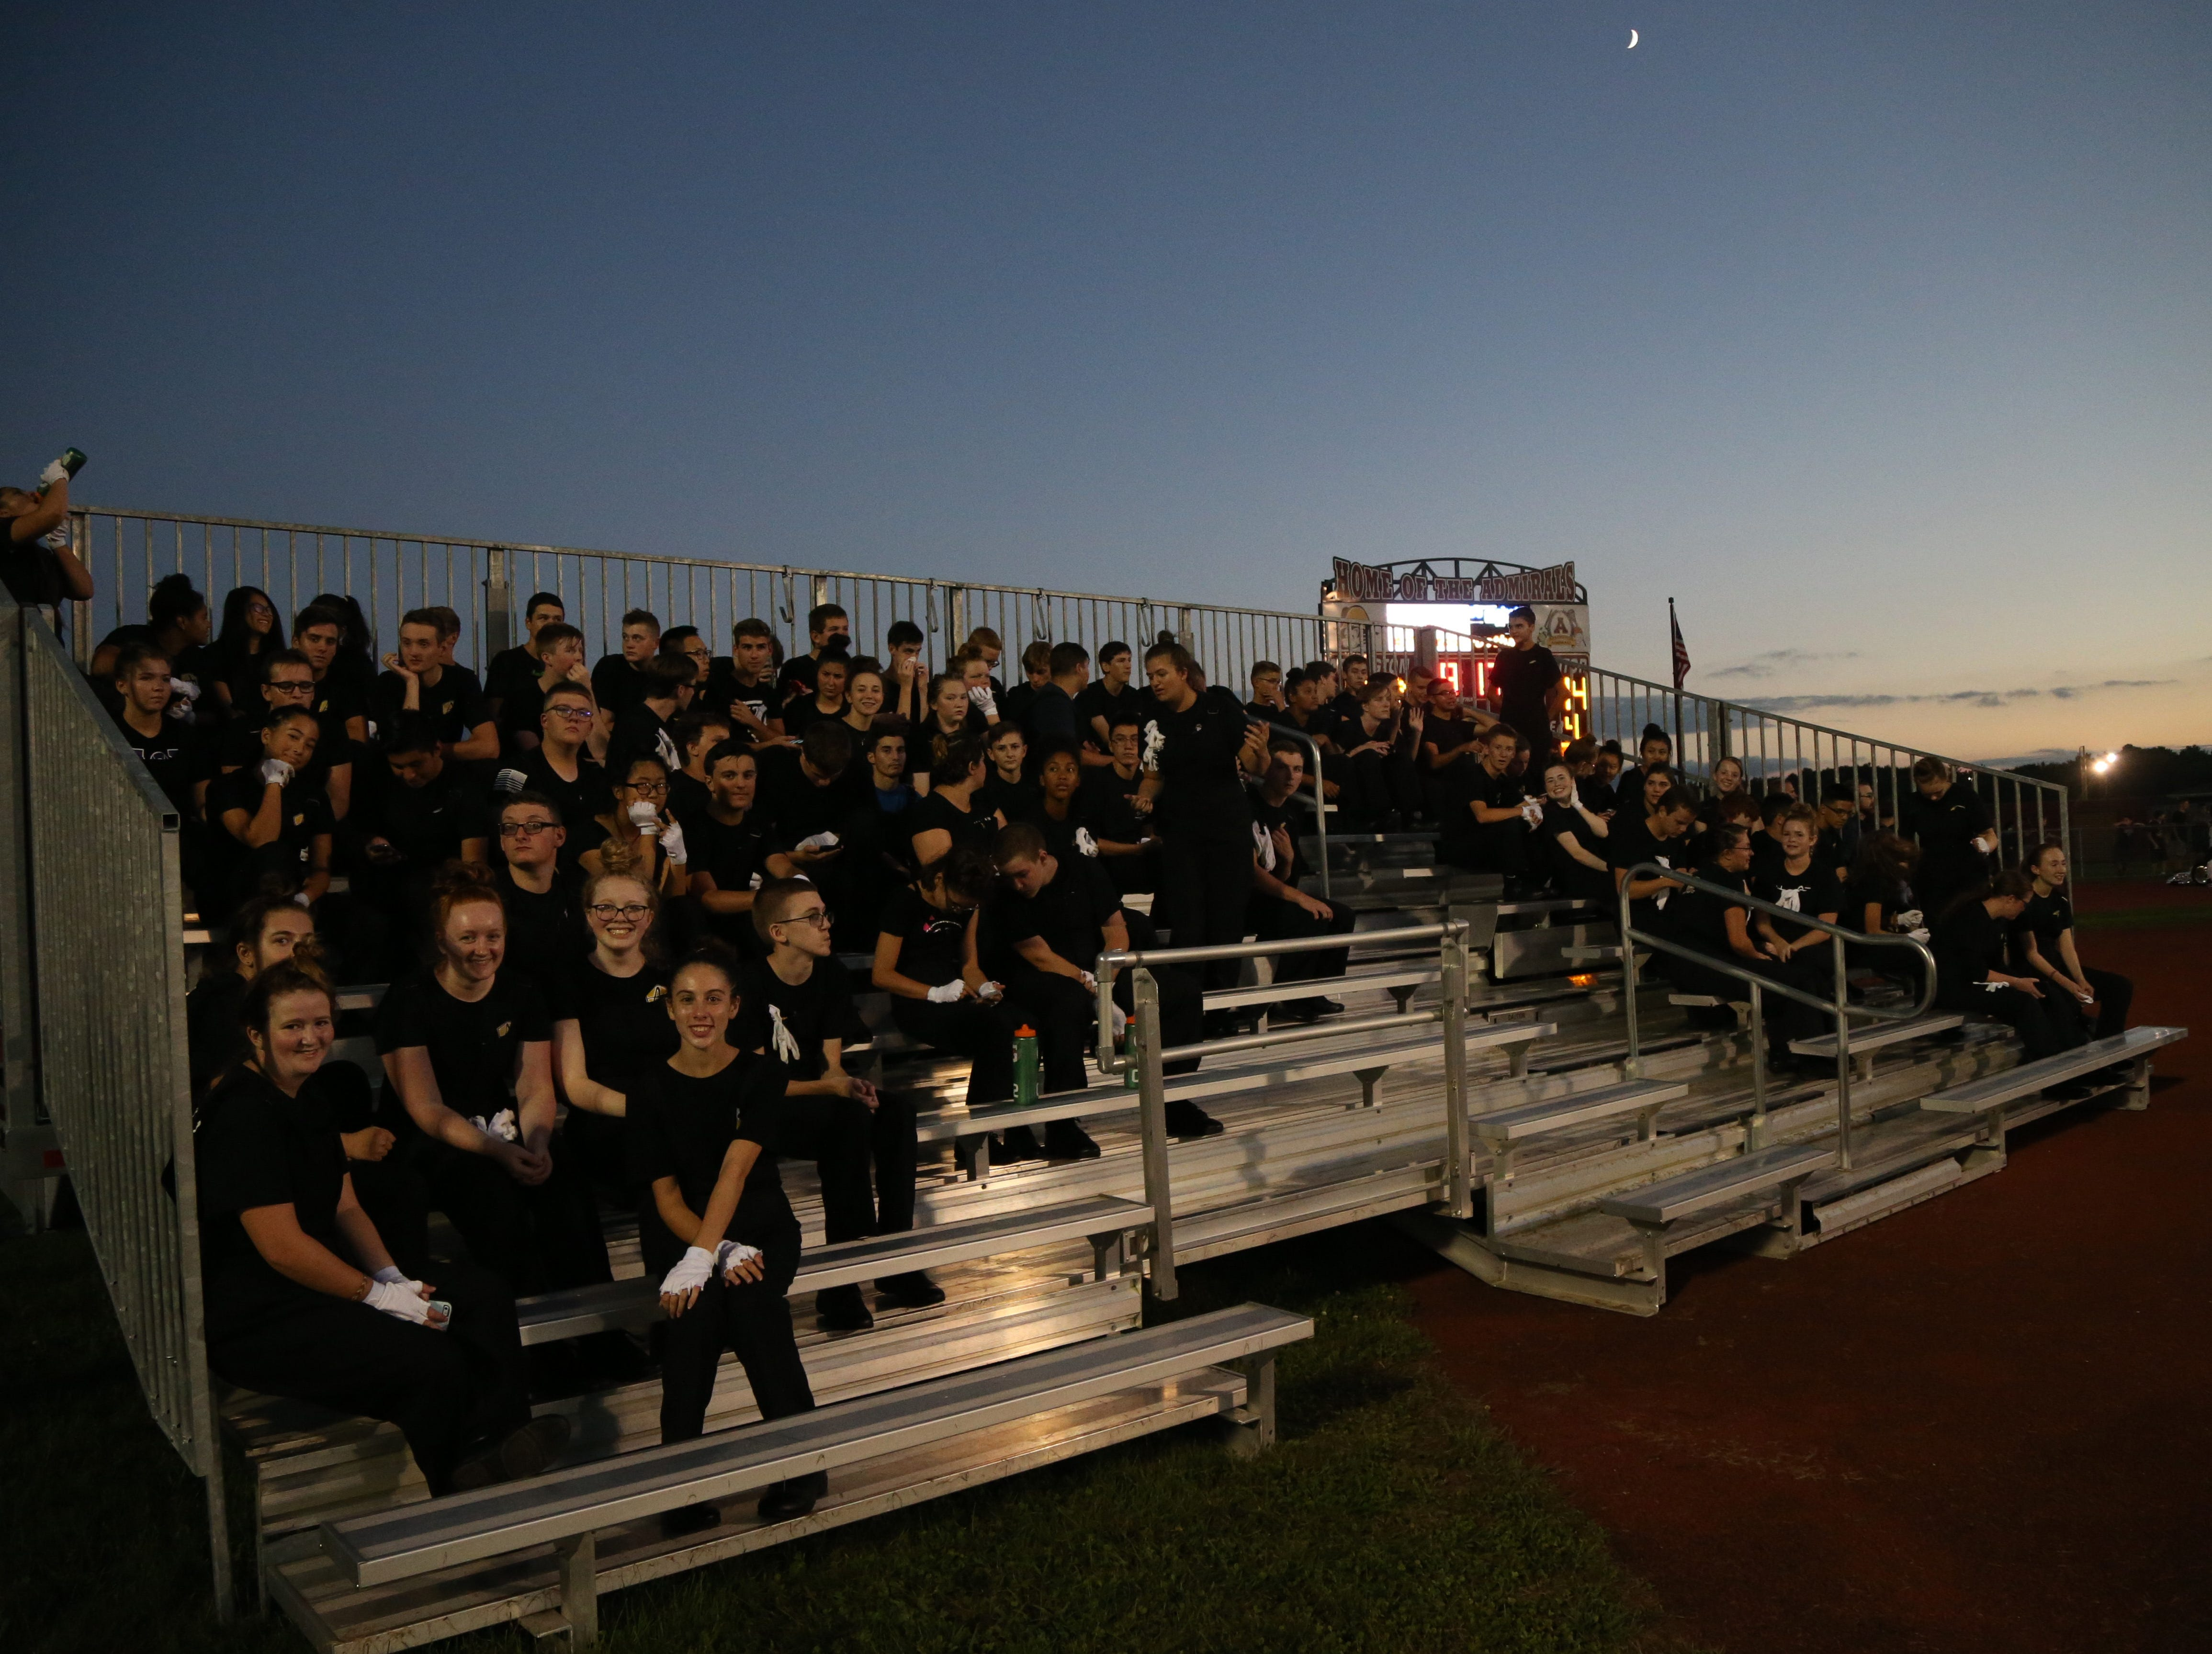 Arlington's marching band rest on the bleacher after performing at Friday's game between Arlington and John Jay in Freedom Plains on Sept 14, 2018.